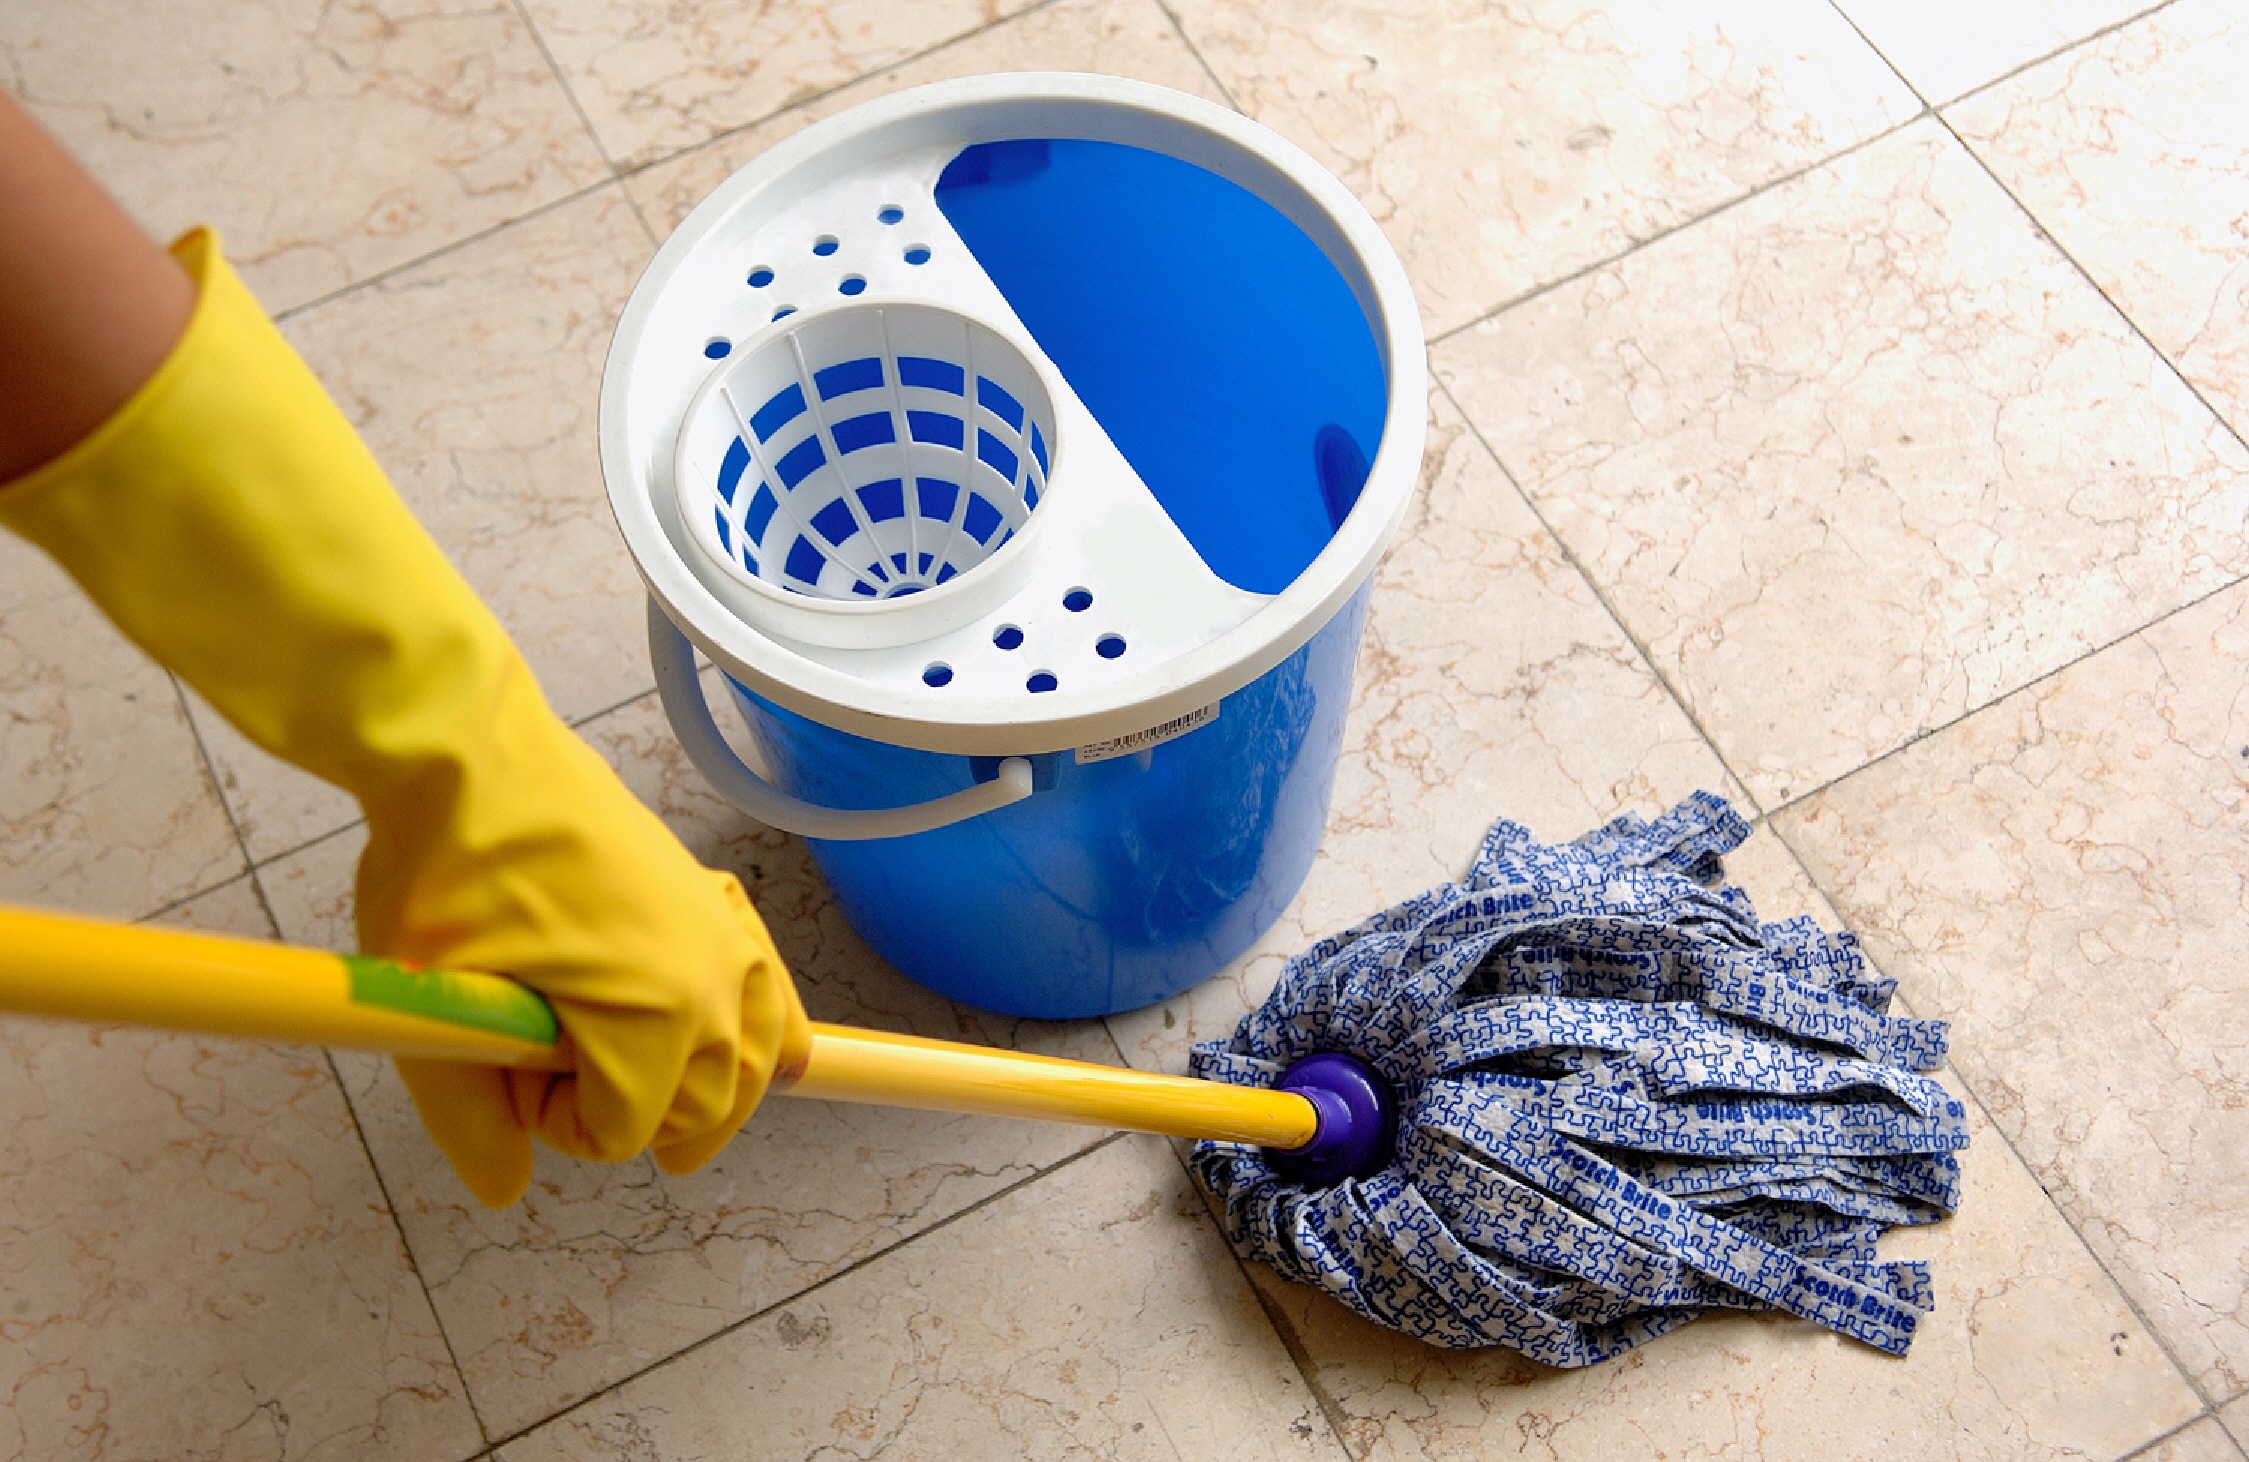 Simple routines to cleaning ceramic tile floors homesfeed cleaning ceramic tile floors by wet mopping with water and cleaning products white blue bucket dailygadgetfo Images